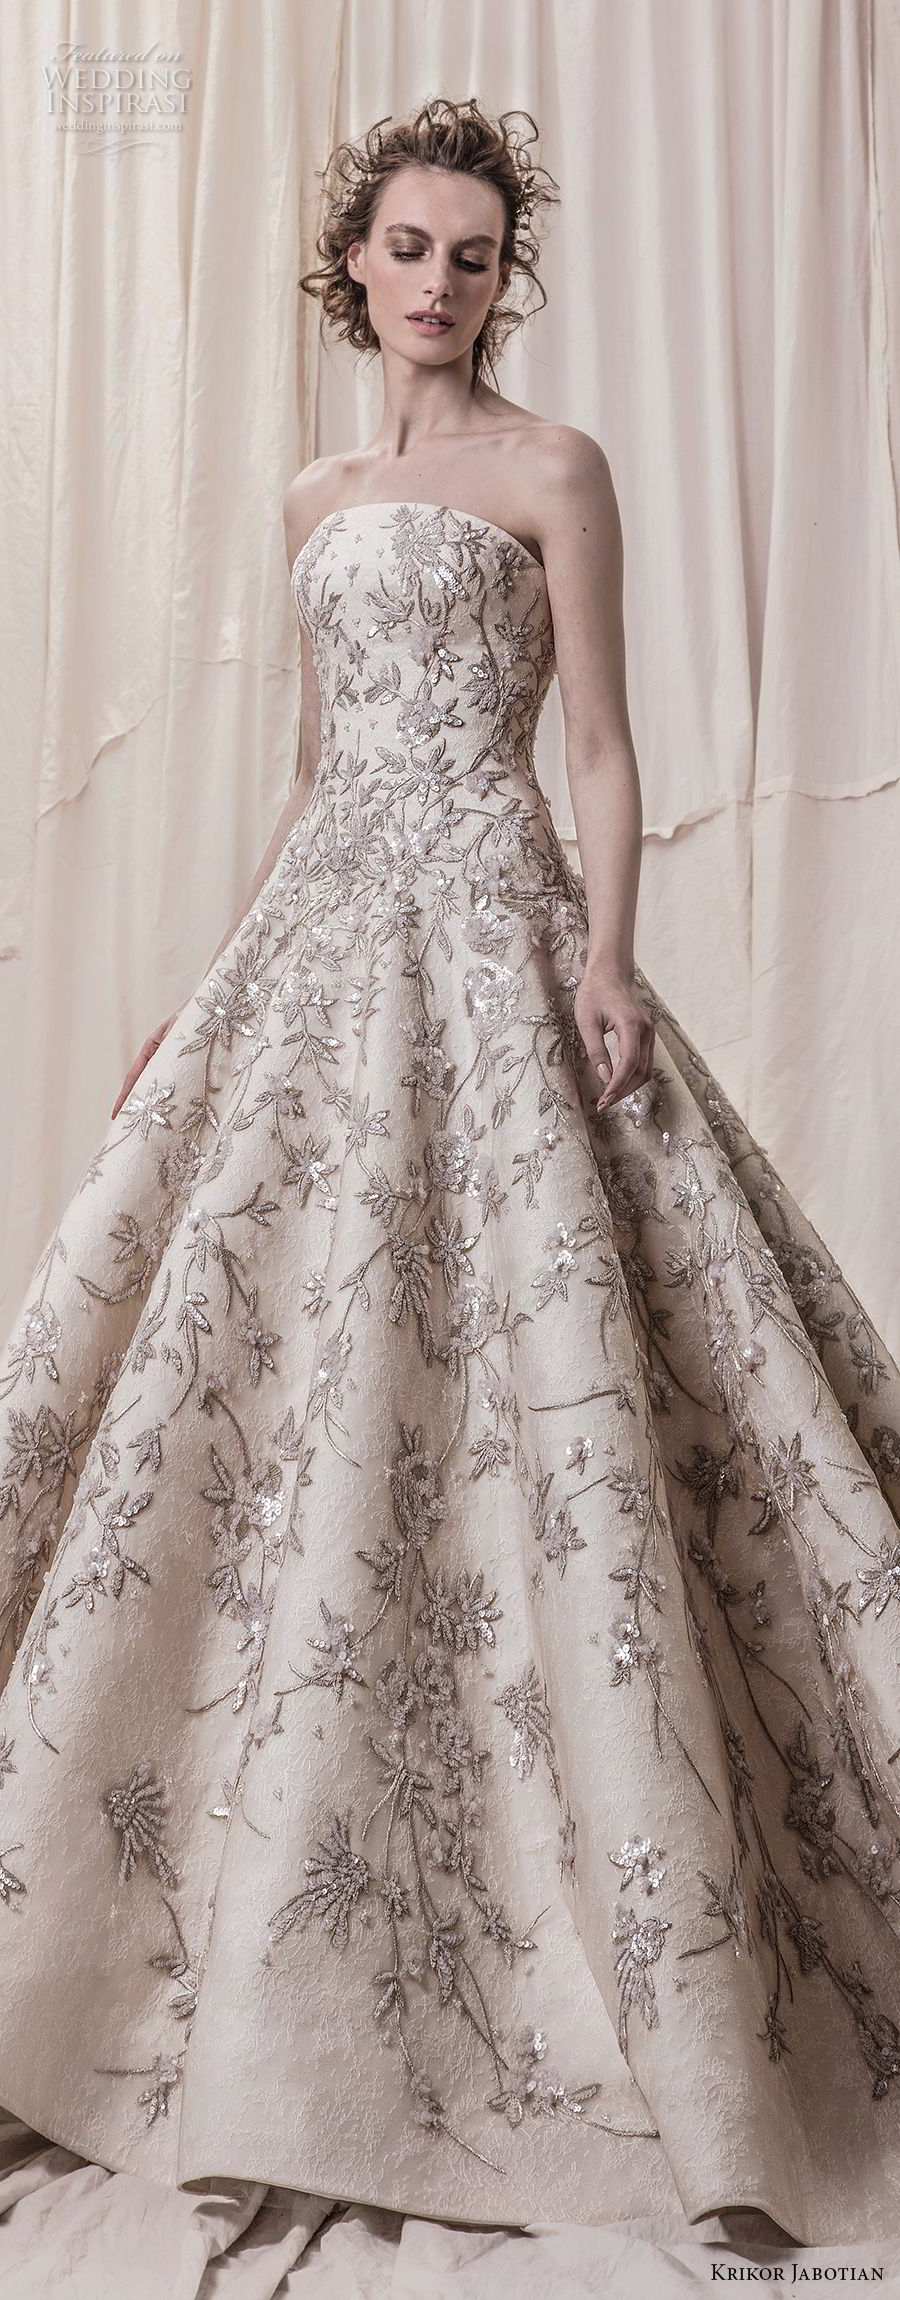 krikor jabotian spring 2018 bridal strapless straight across neckline full embellishment champagne color princess ball gown a  line wedding dress royal train (07) lv